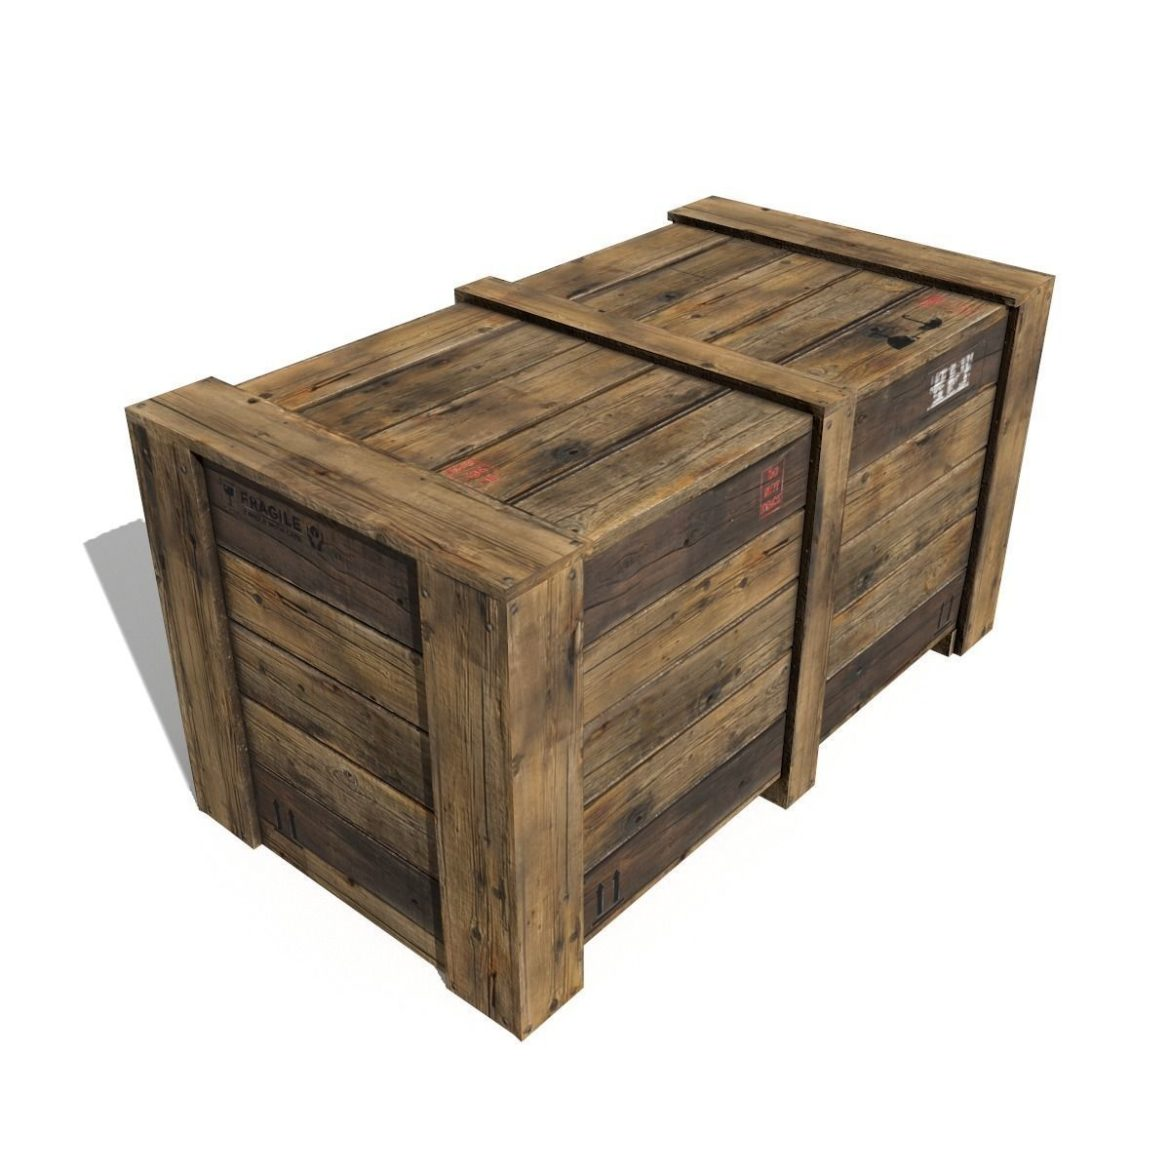 transport crates pack 3 3d model fbx obj 319435